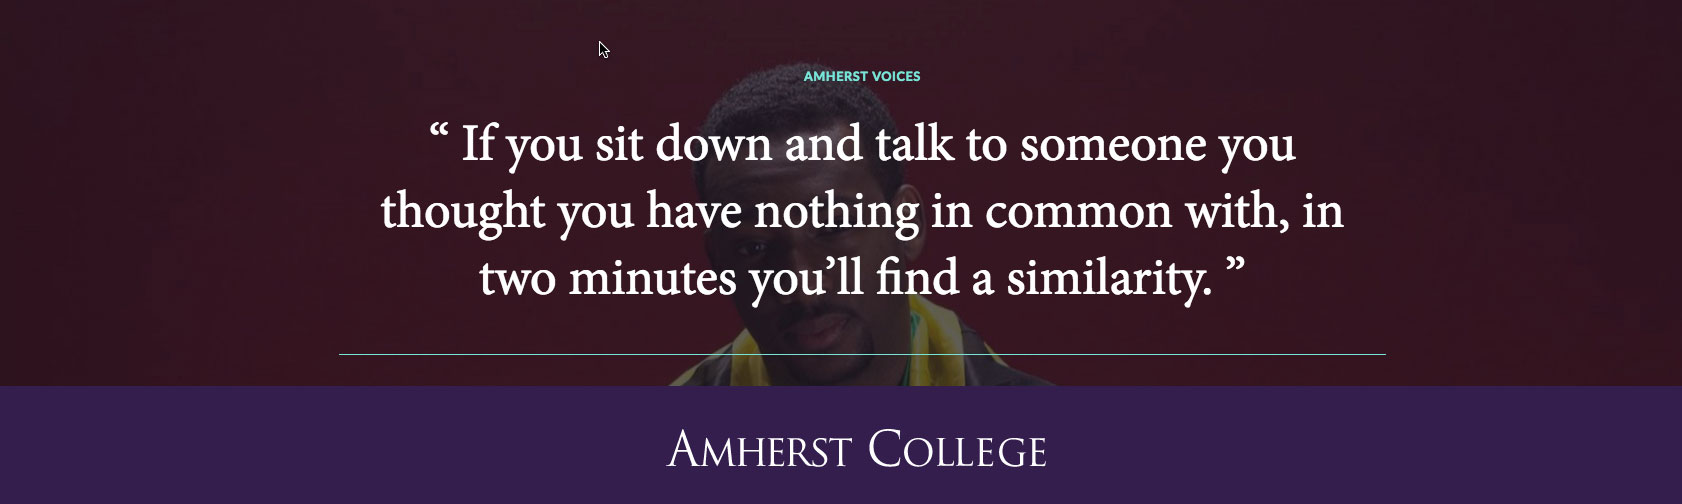 """If you sit down and talk to someone you thought you have nothing in common with, in two minutes you'll find a similarity."""